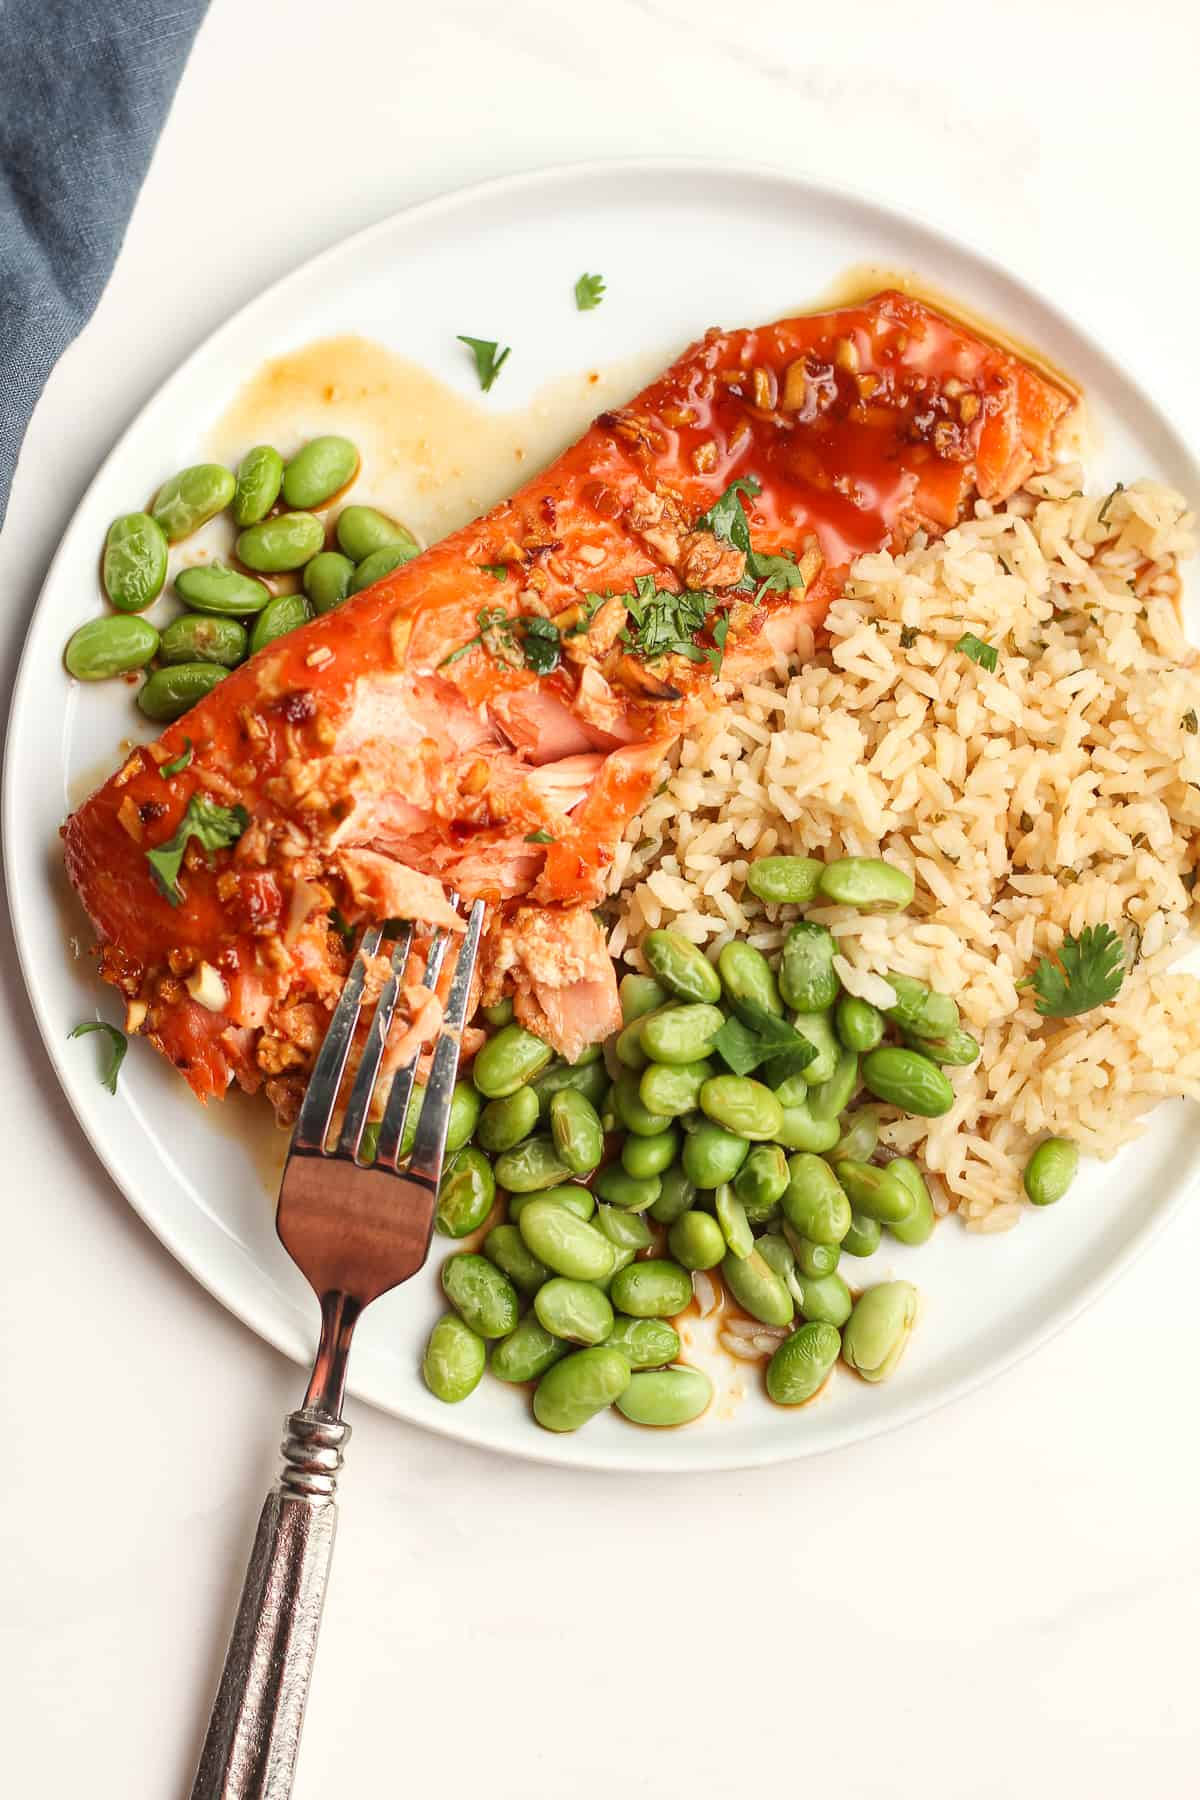 A plate of baked Asian salmon with a fork.